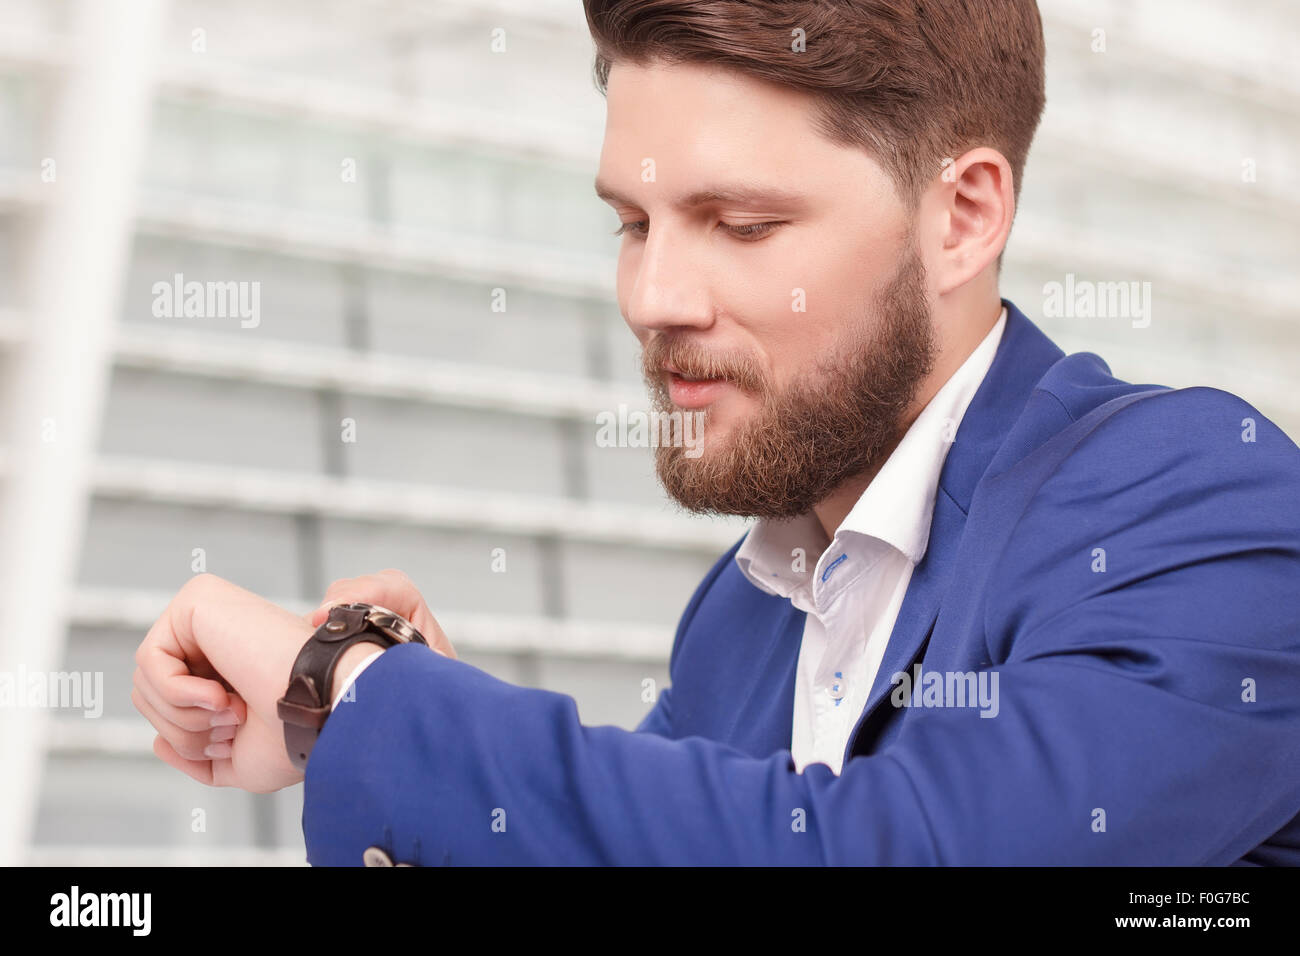 Handsome guy with beard checking time - Stock Image